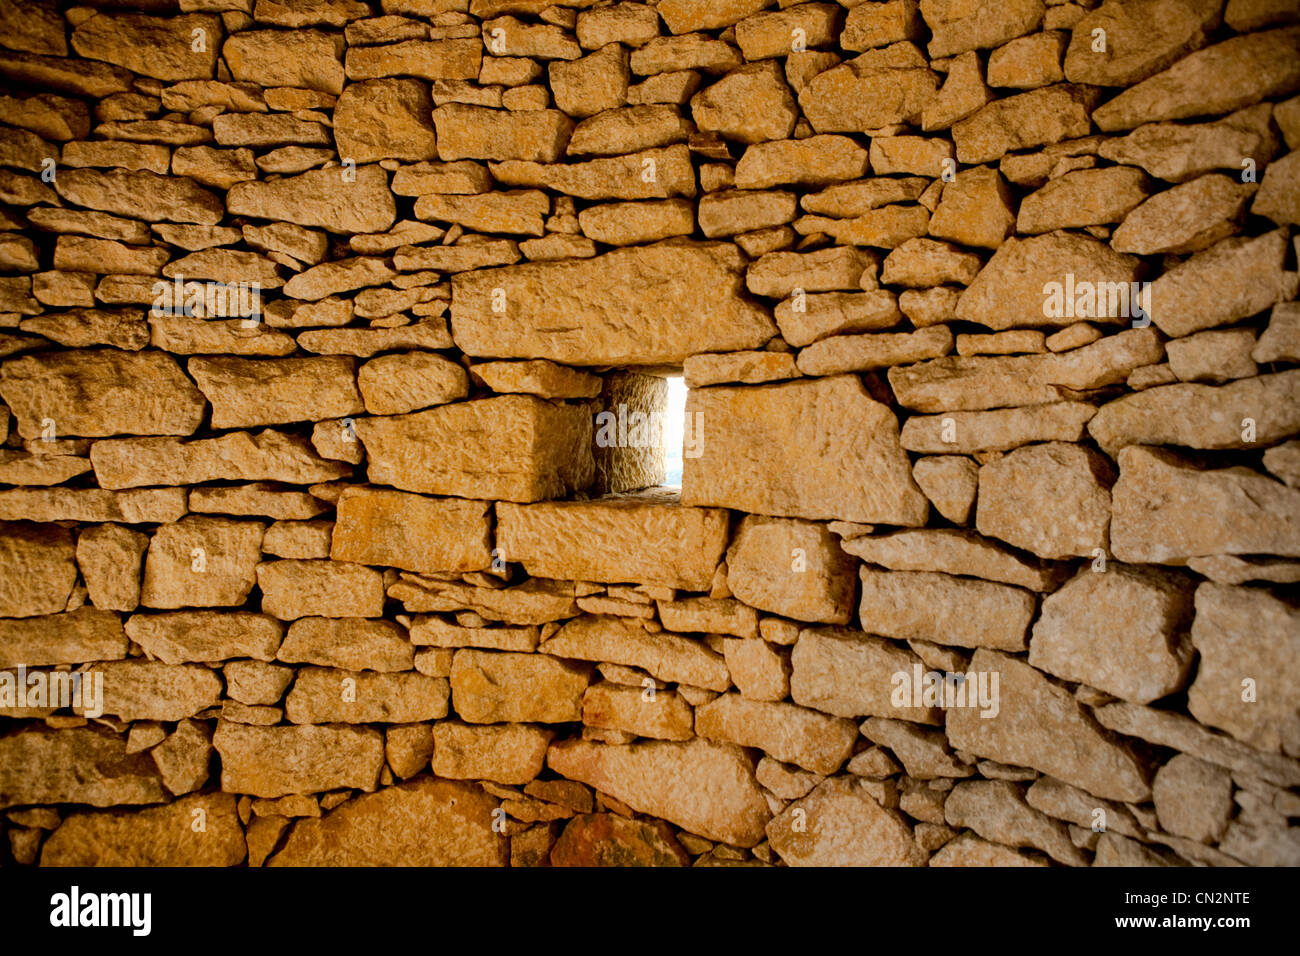 Square window in stone wall - Stock Image